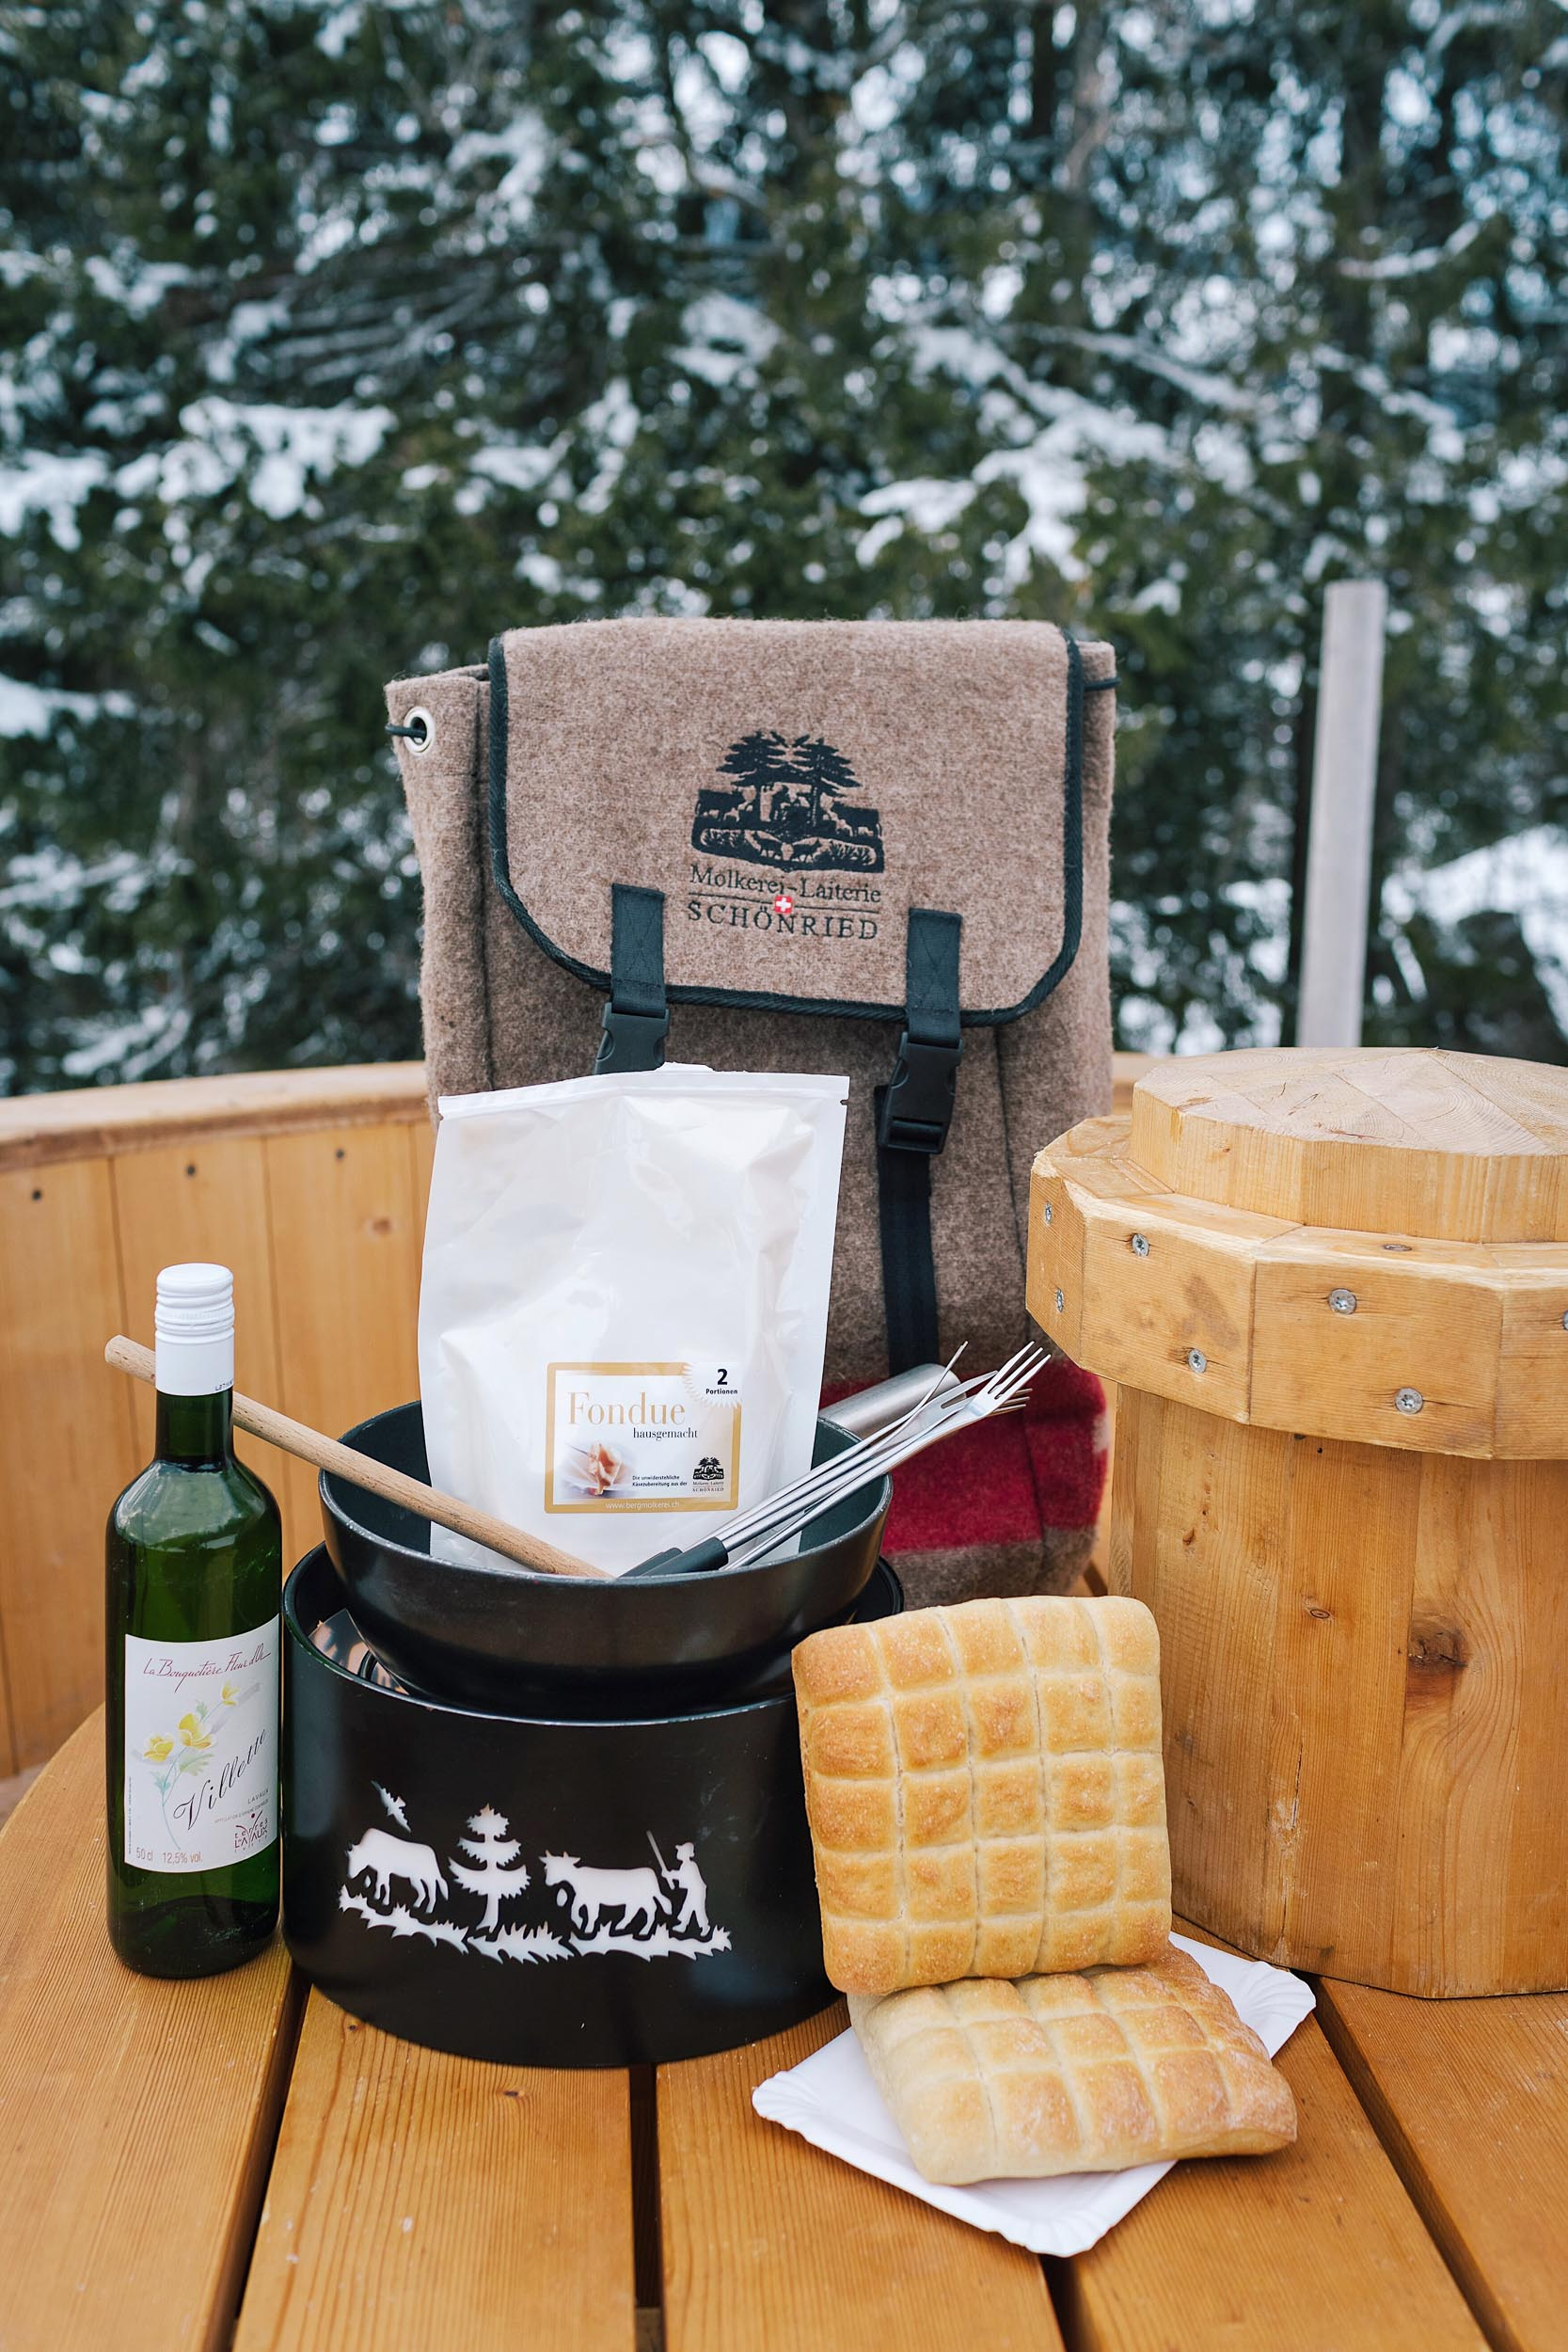 Before you start your fondue hike in Gstaad, you'll want to pick up a fondue backpack